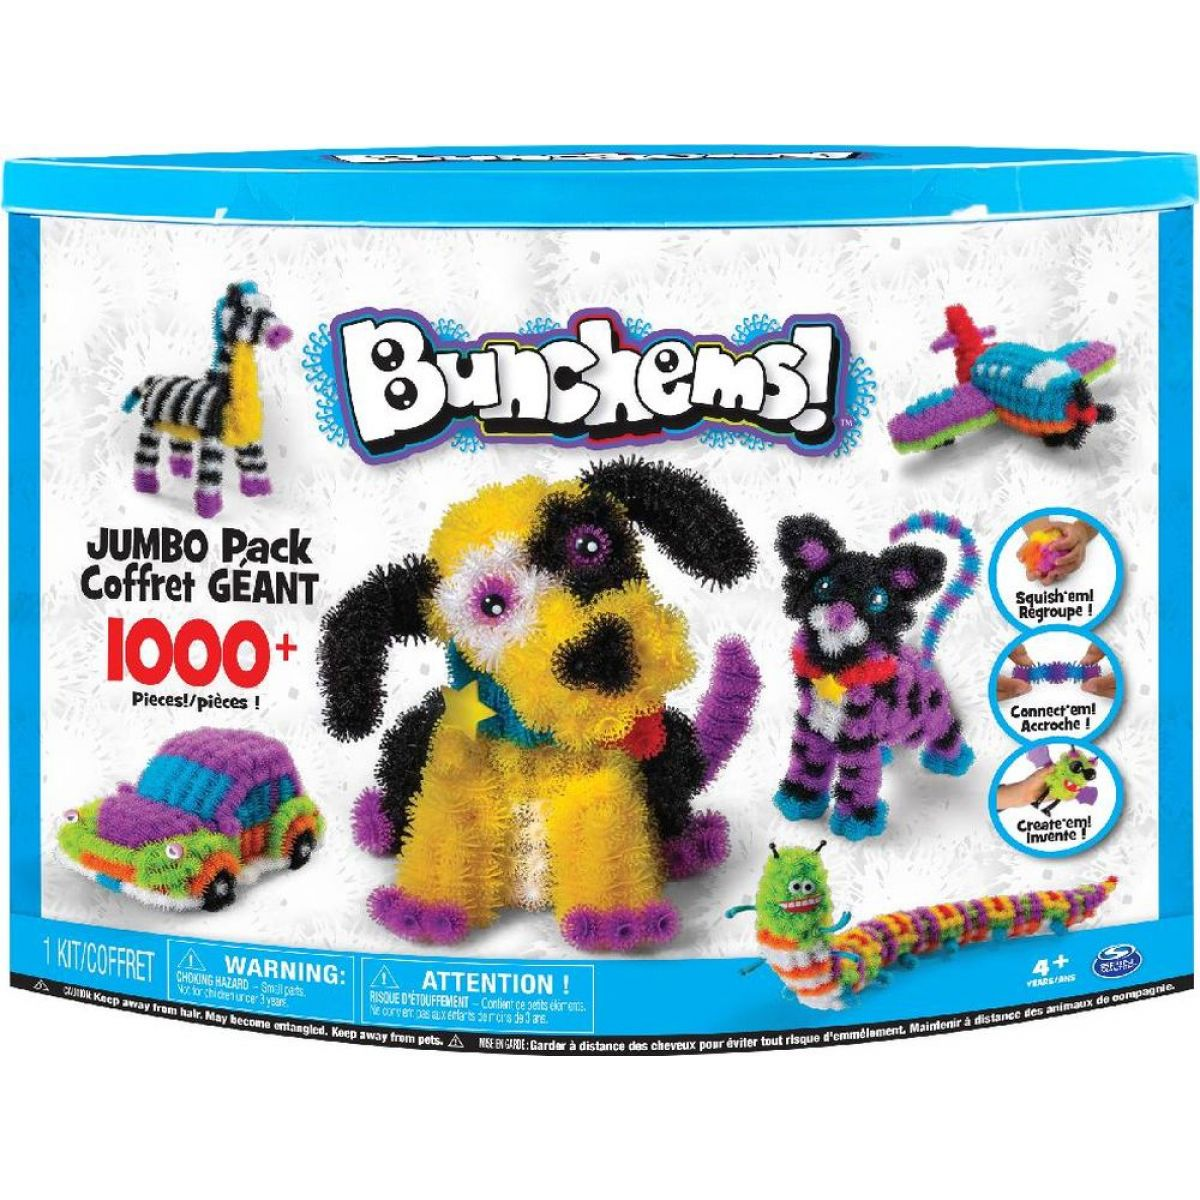 Bunchems Jumbo Pack